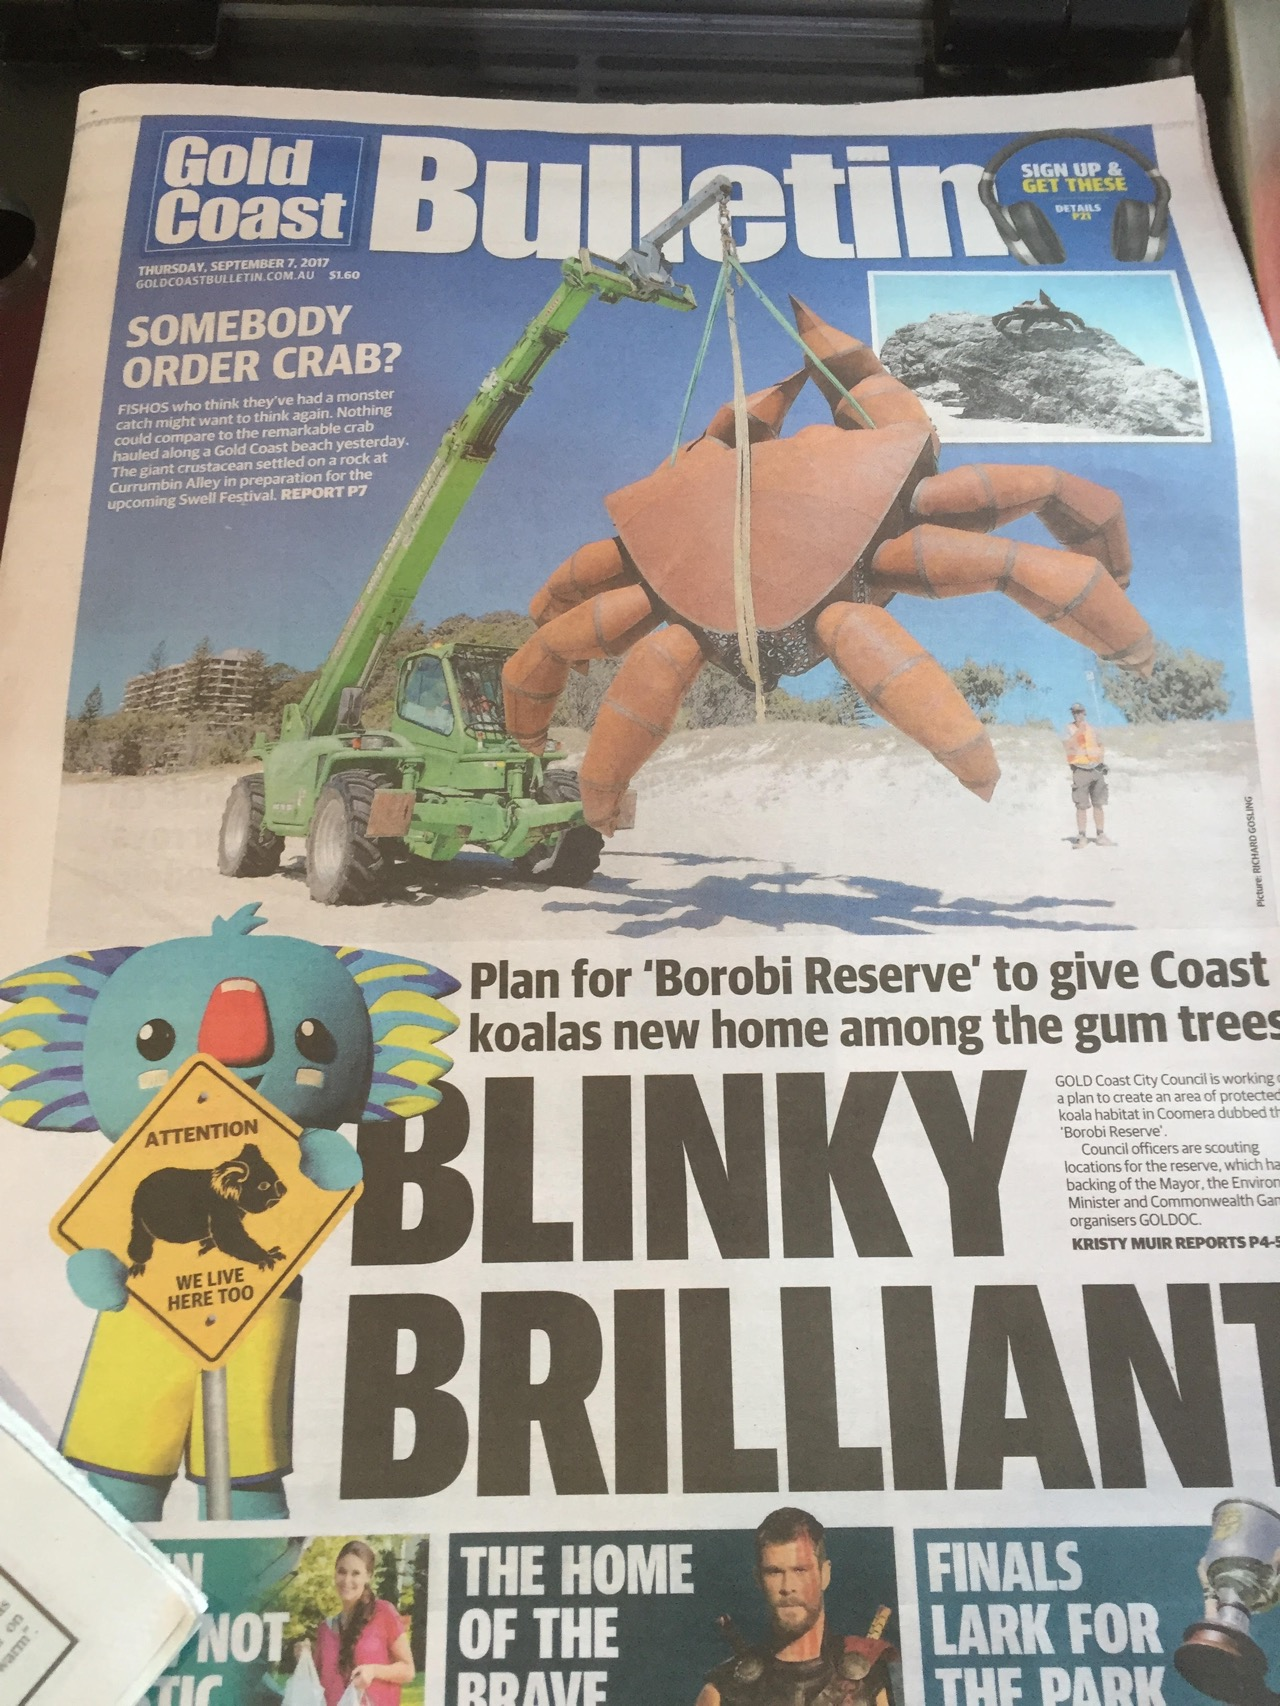 Front Page News Swell Festival Wow